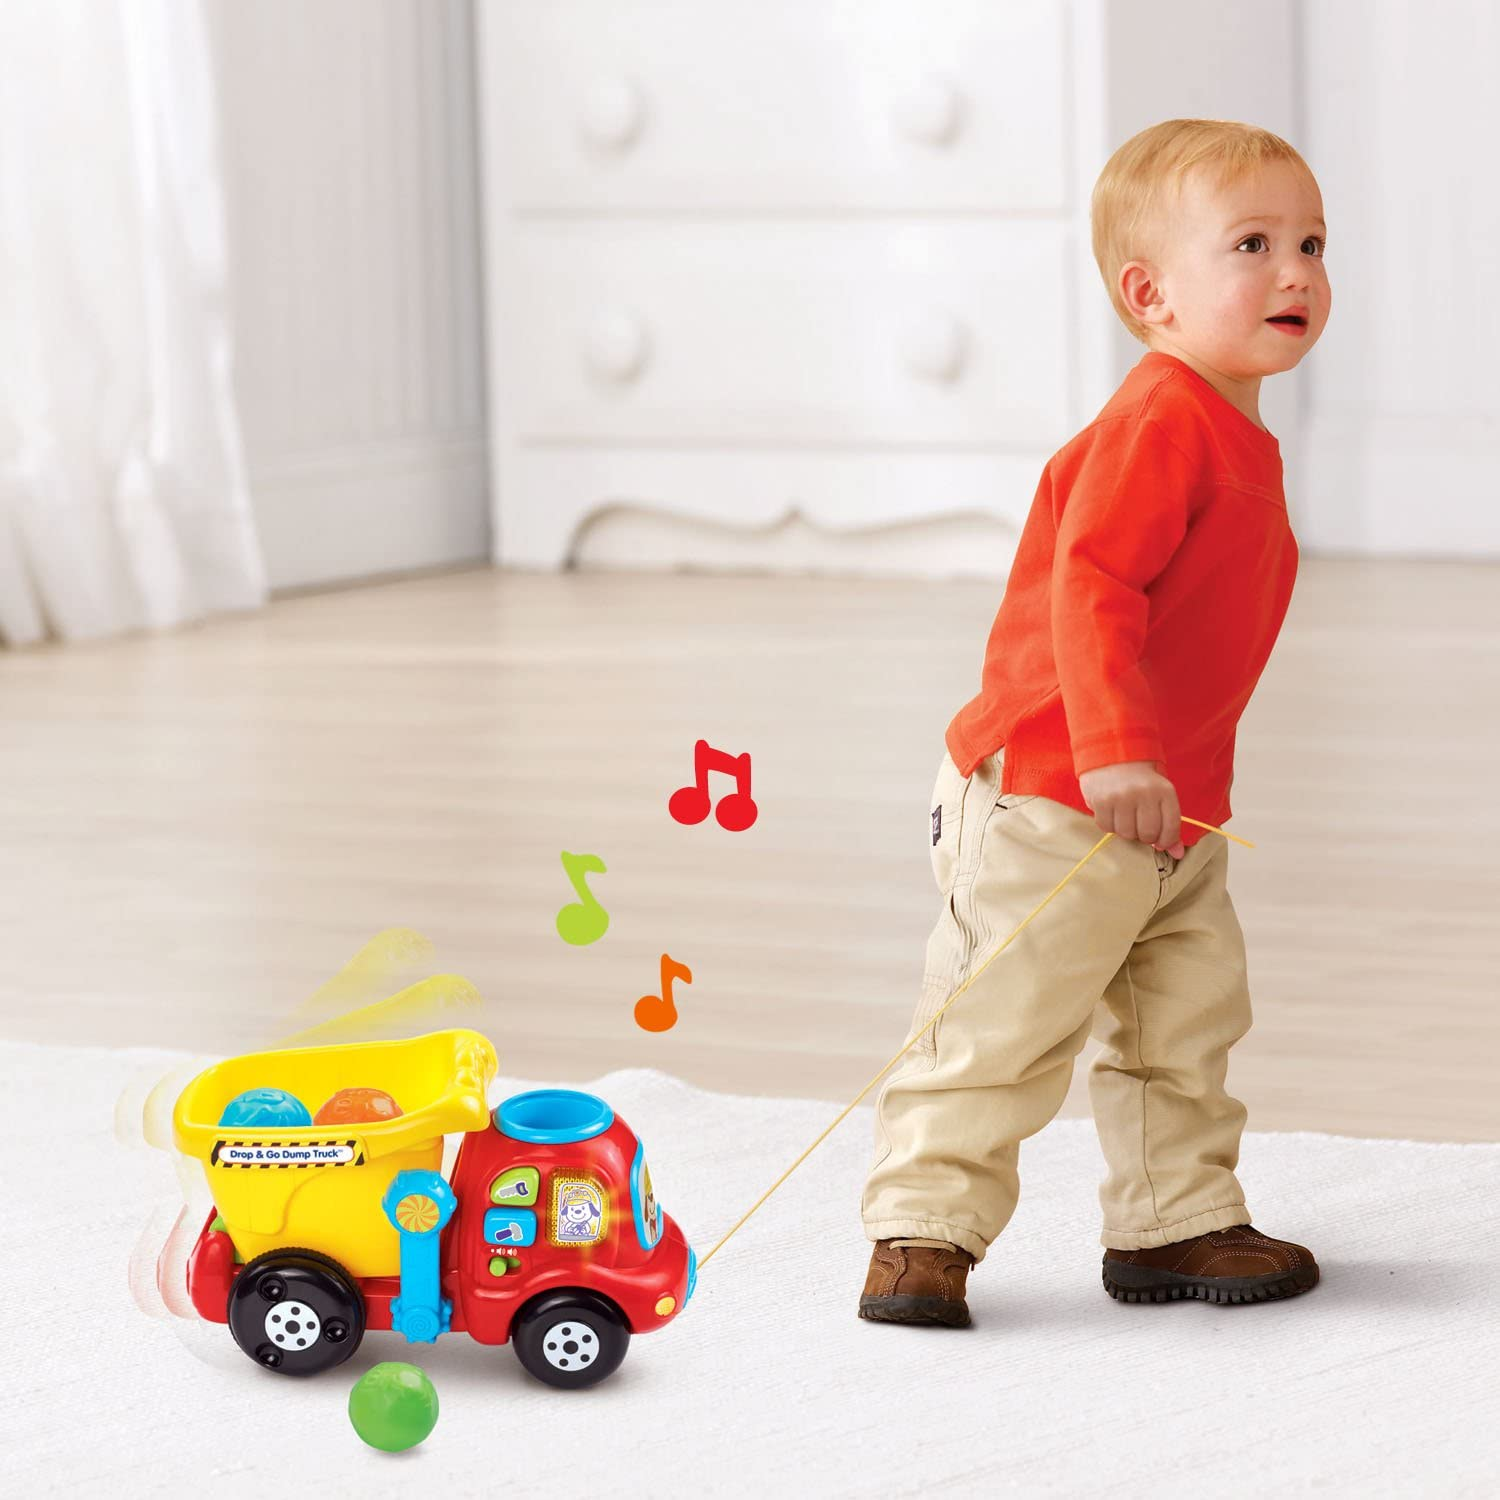 Top 10 Baby & Toddler Toys Under